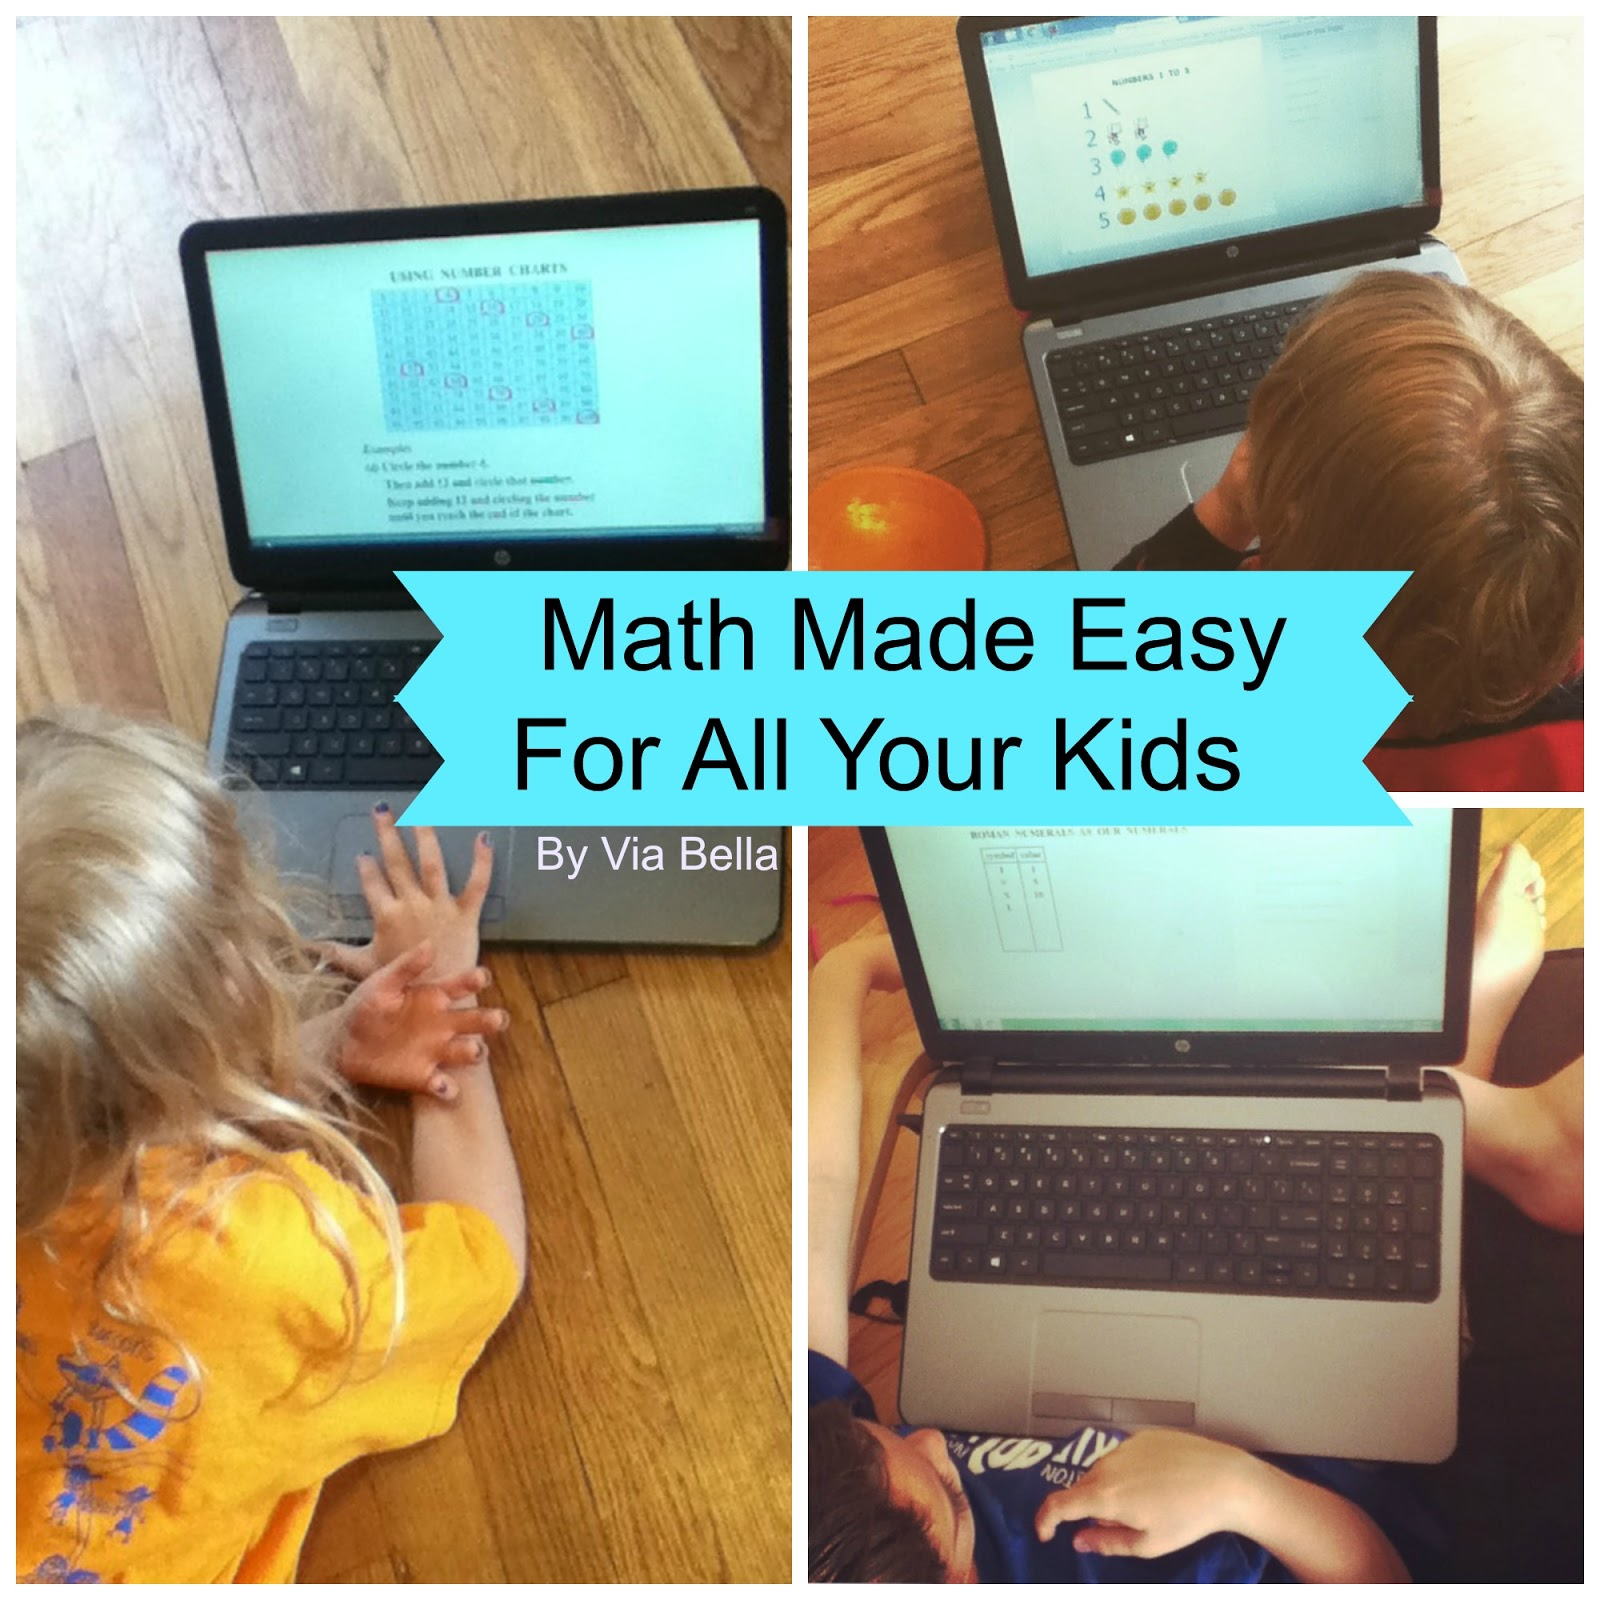 Via Bella: Math Made Easy For All Your Kids